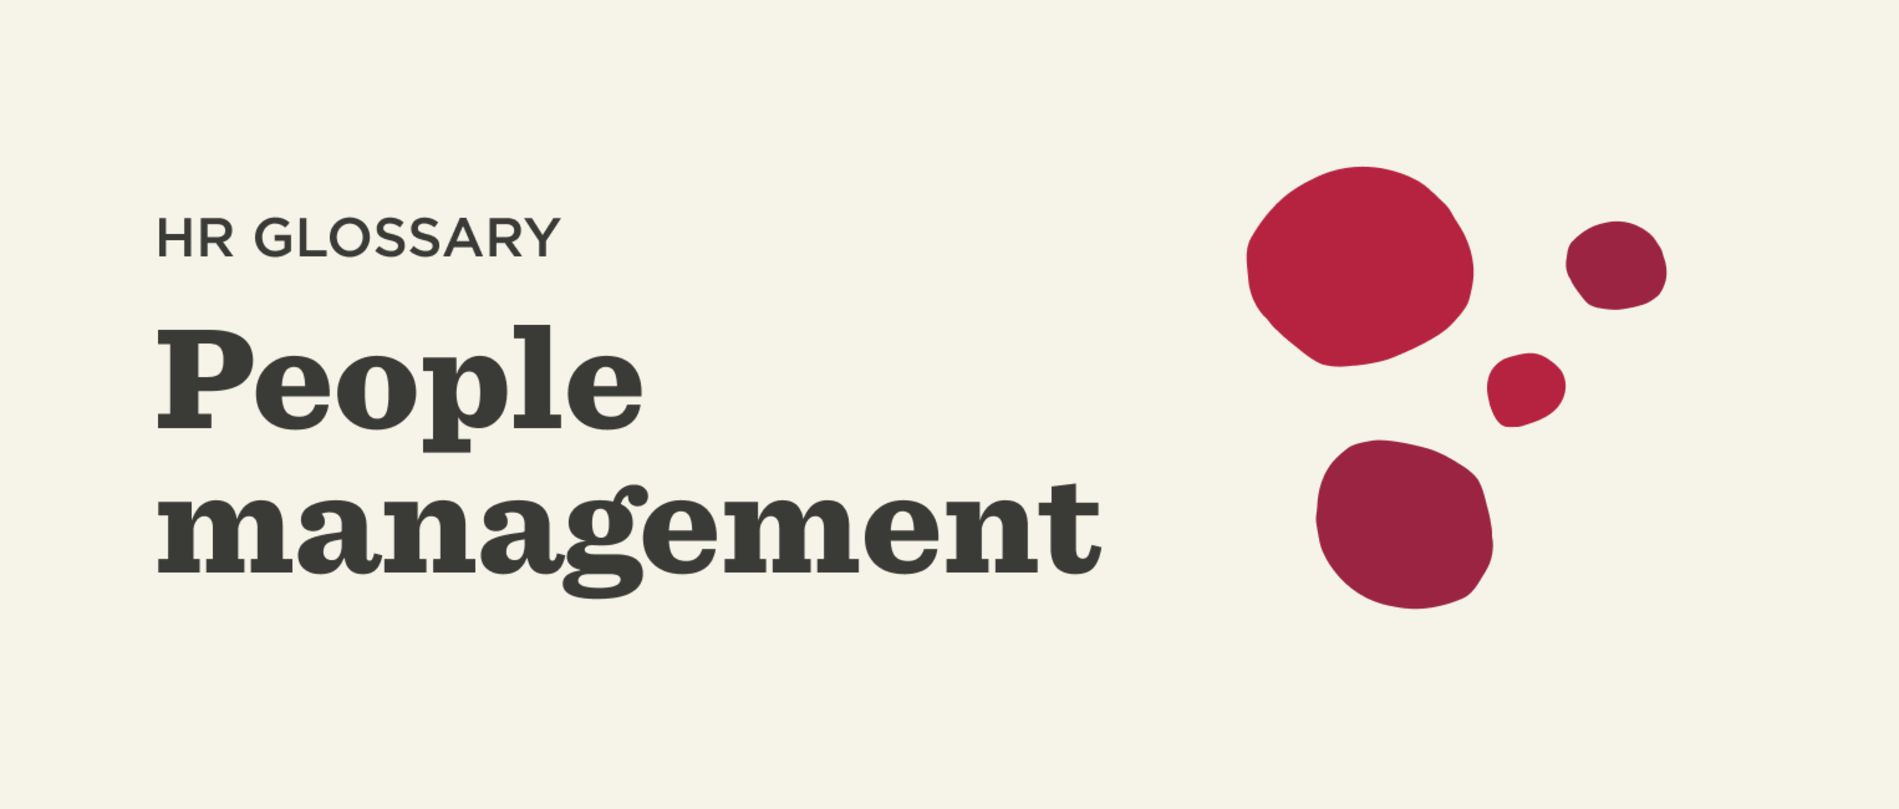 People-management-Glossary-banner